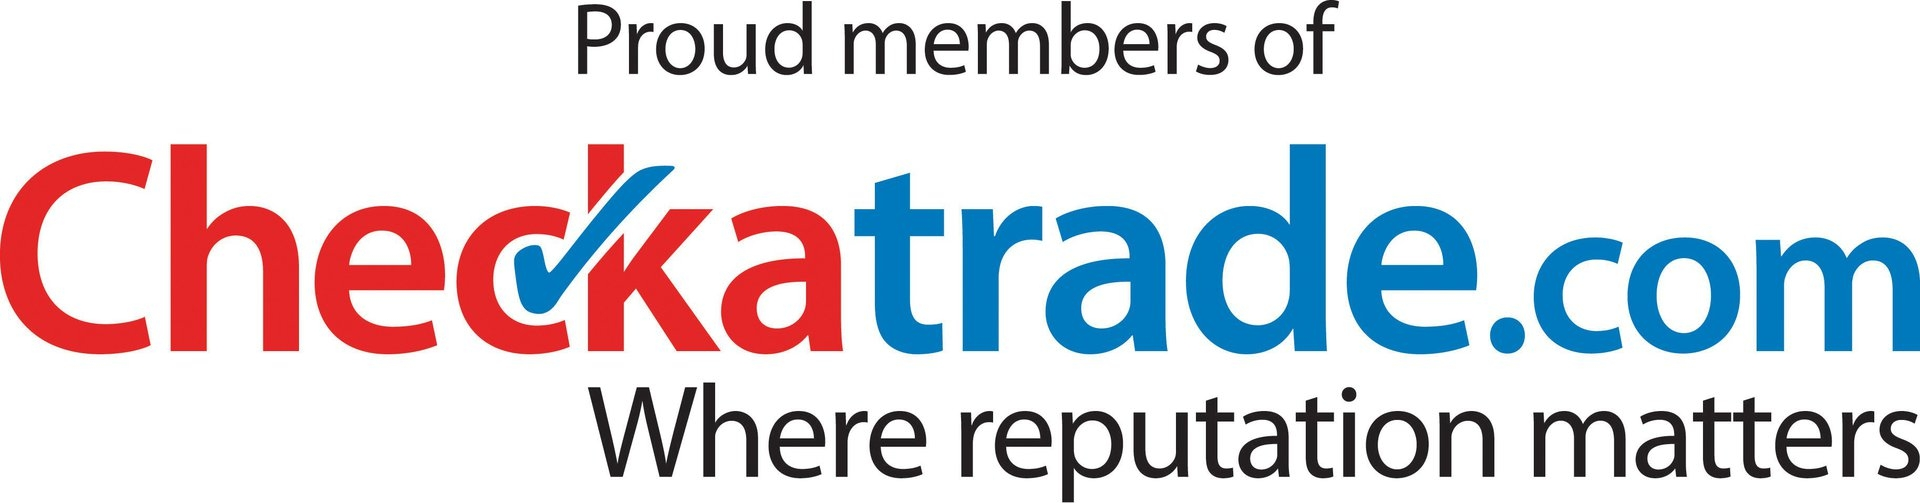 Checkatrade.com Sign of Quality.jpg